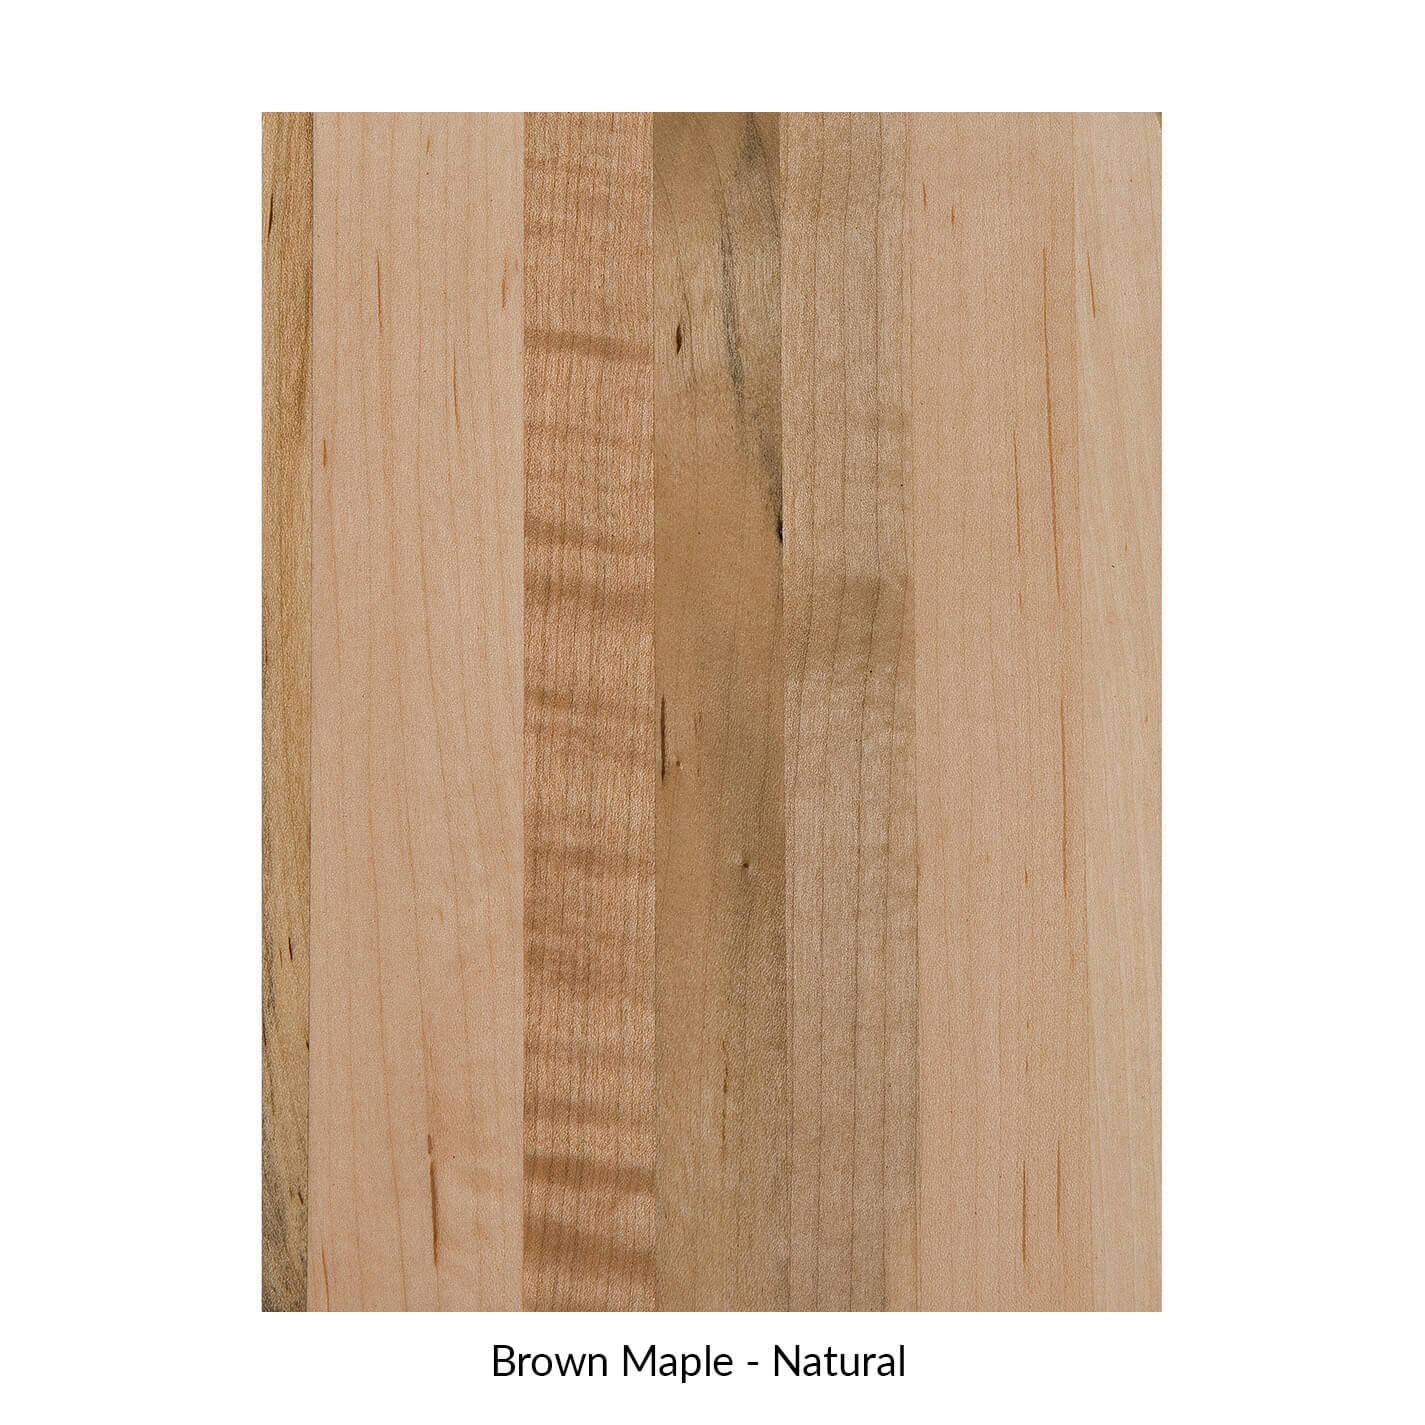 spectrum-brown-maple-natural.jpg